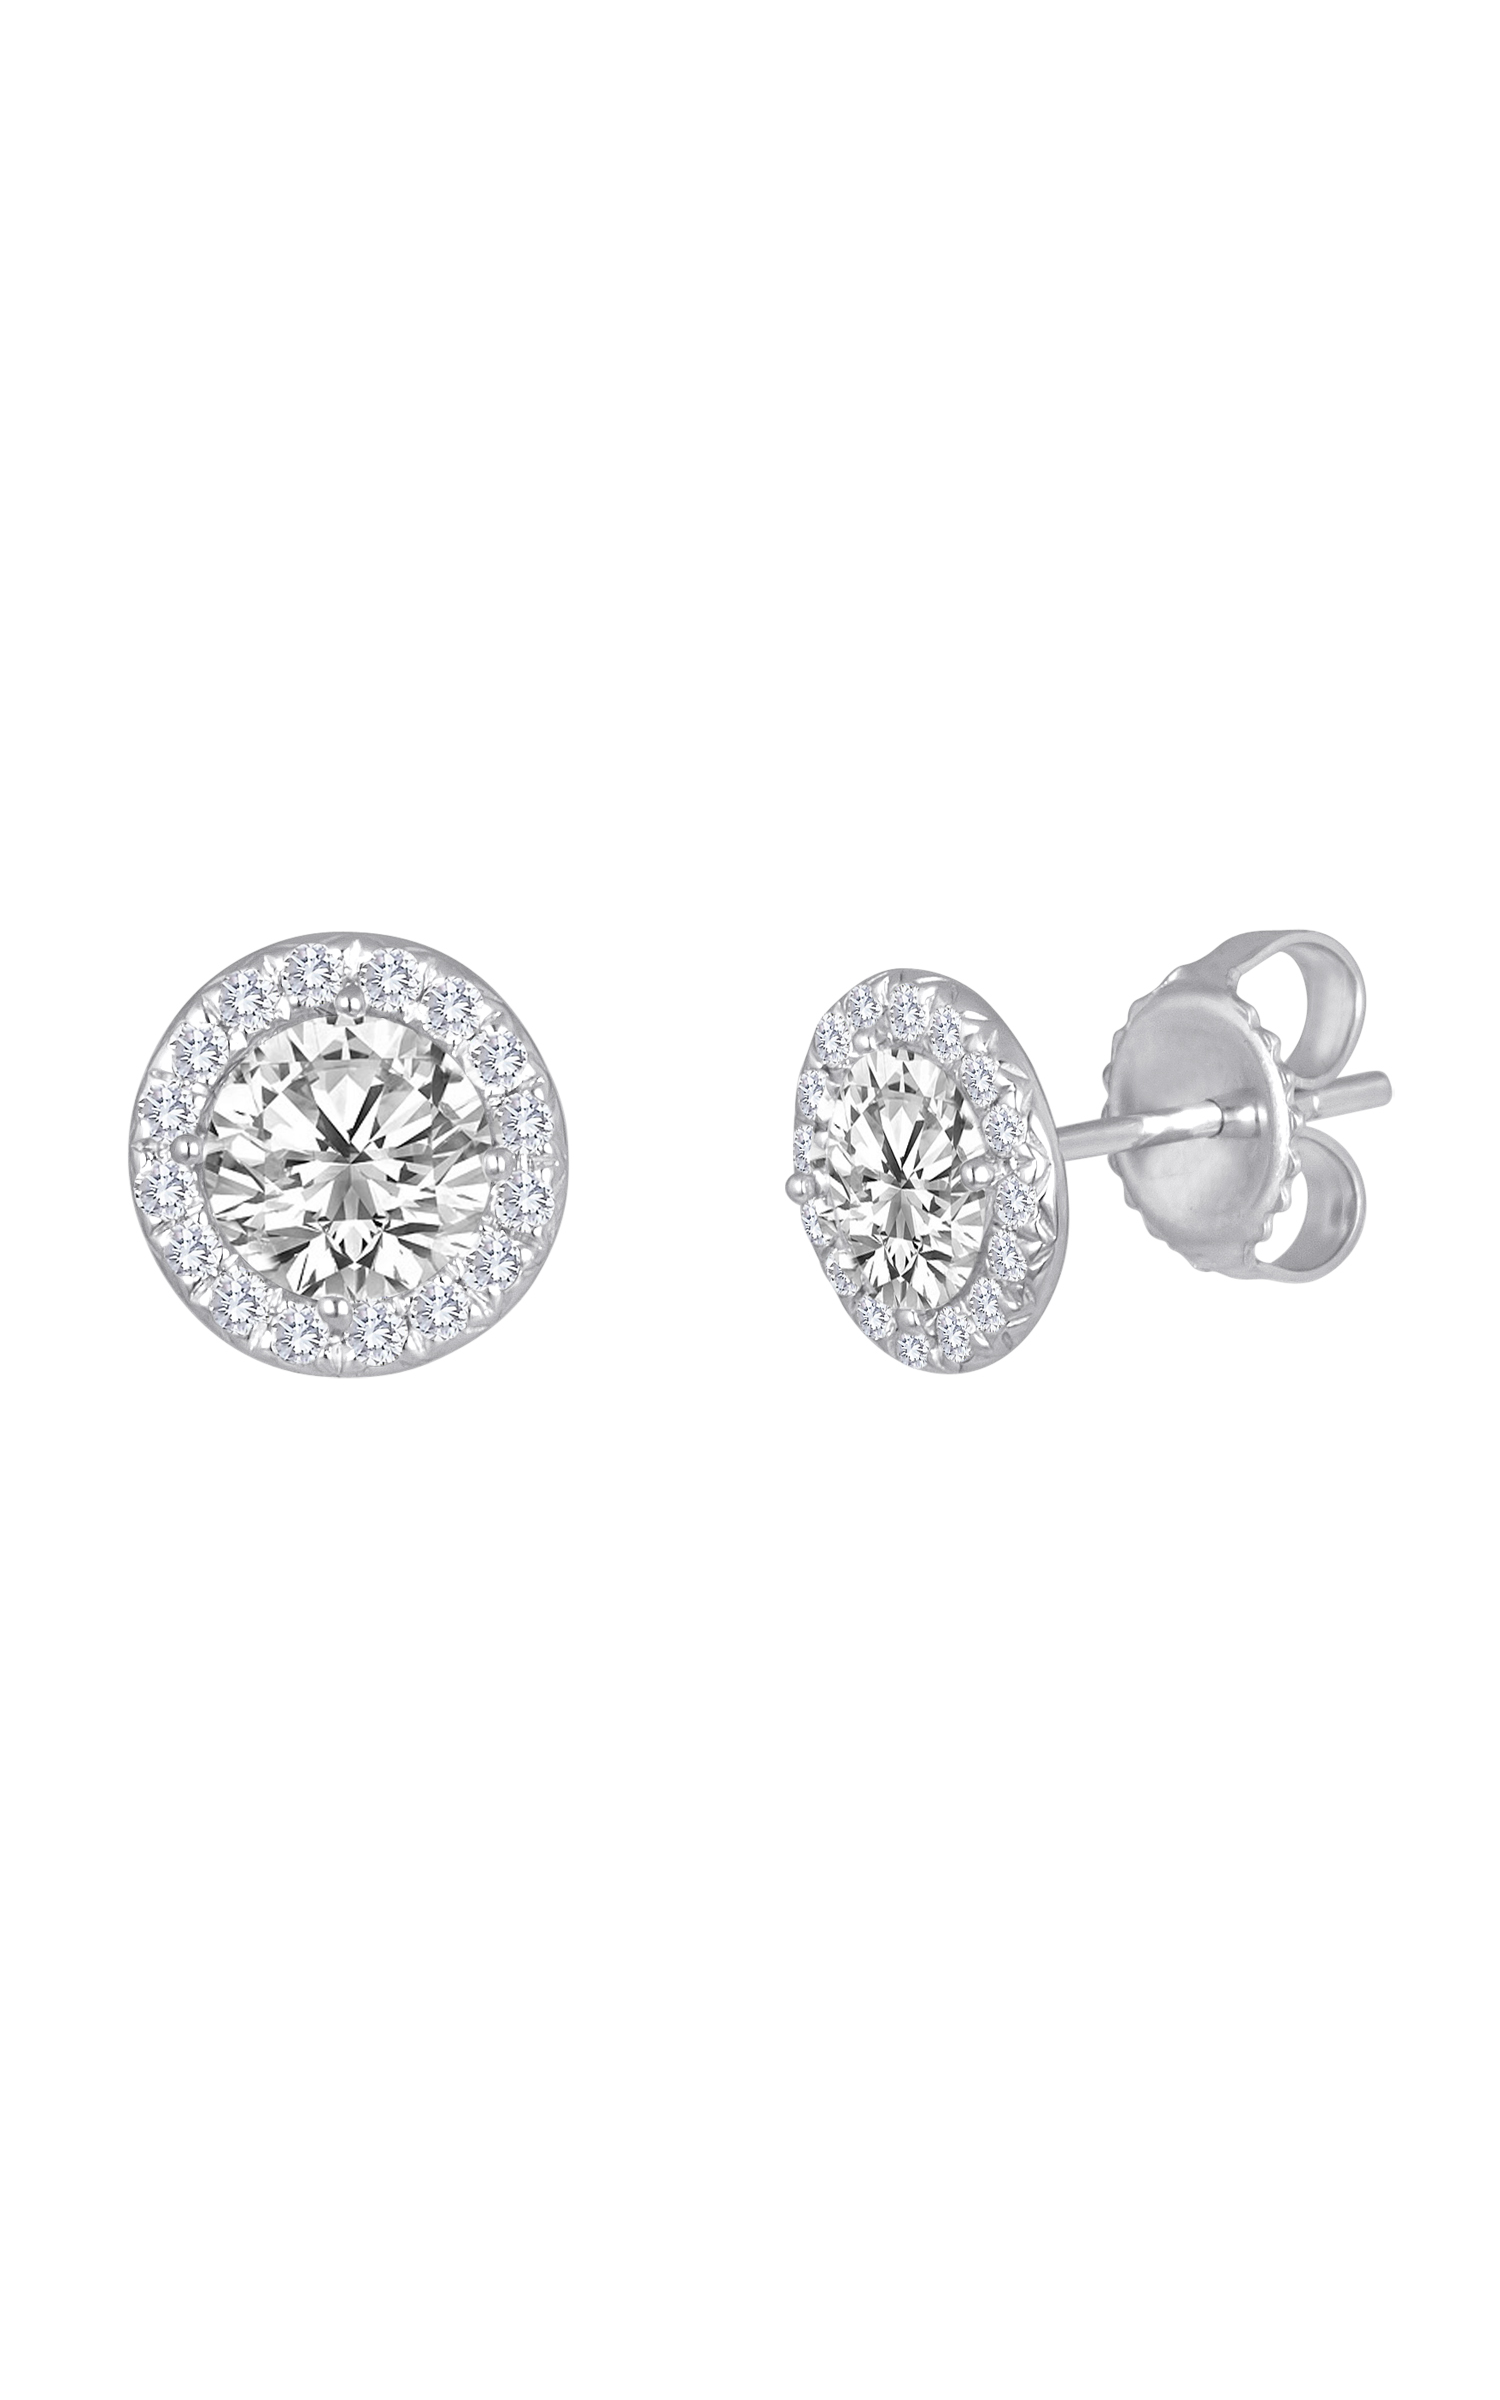 Beny Sofer Earrings Earring SE12-146-6C product image